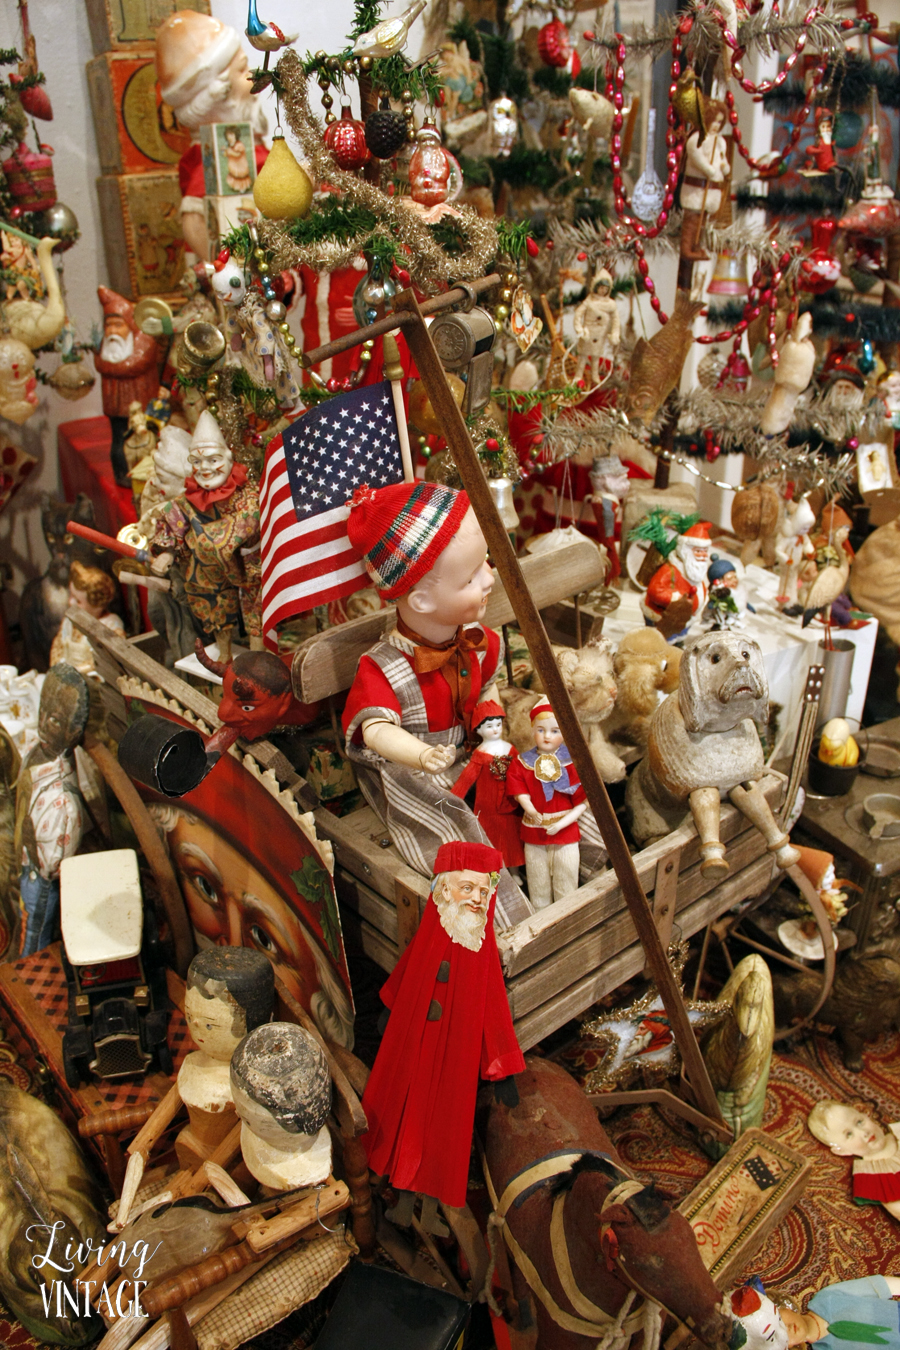 a pretty and elaborate display of an astounding Christmas collection